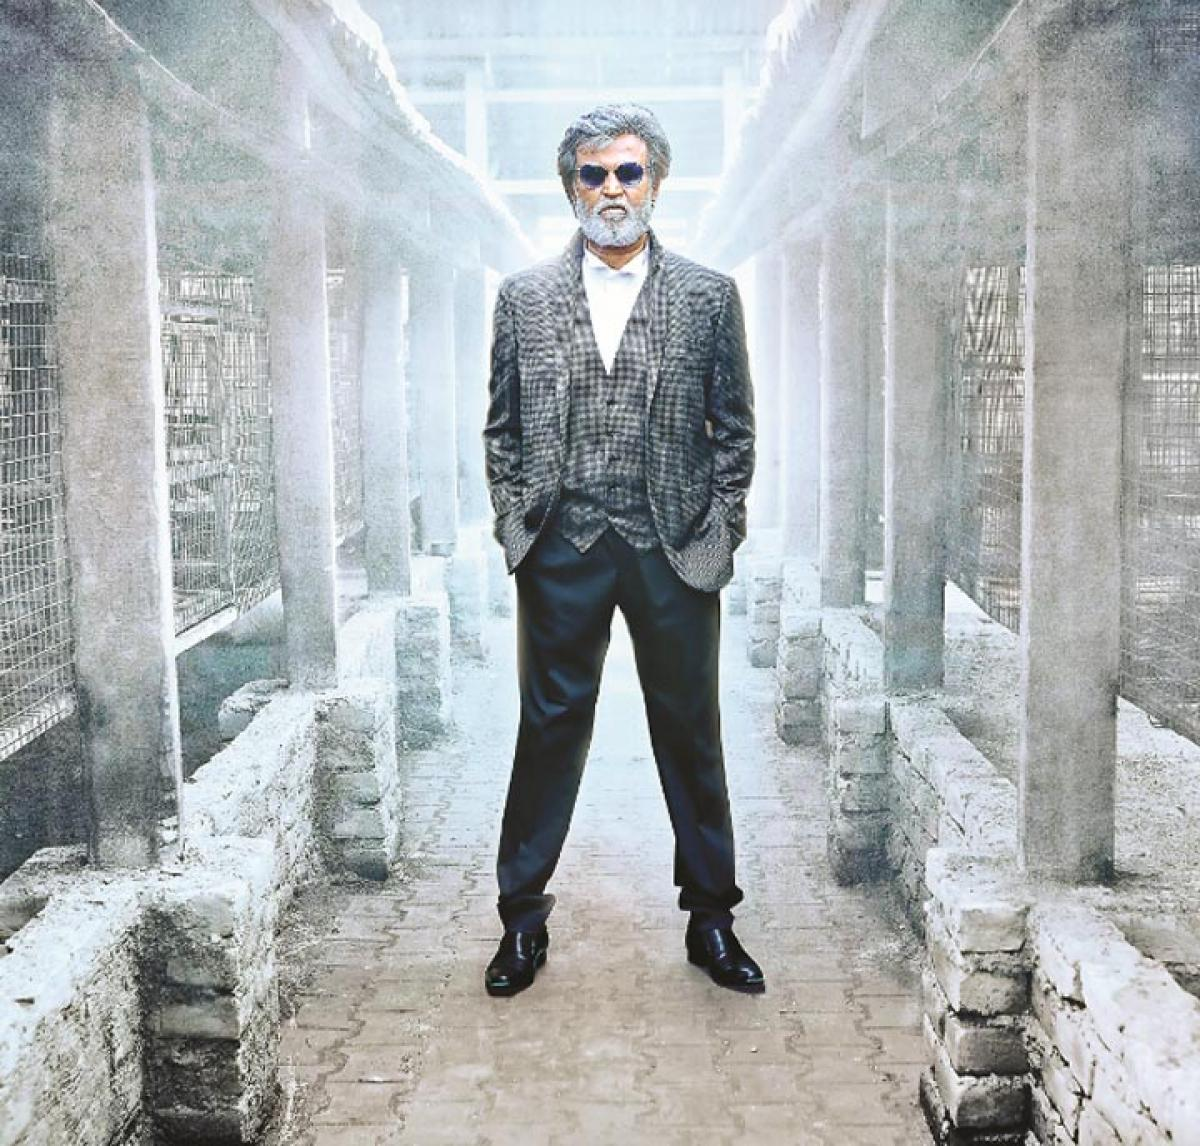 Kabali nearing completion